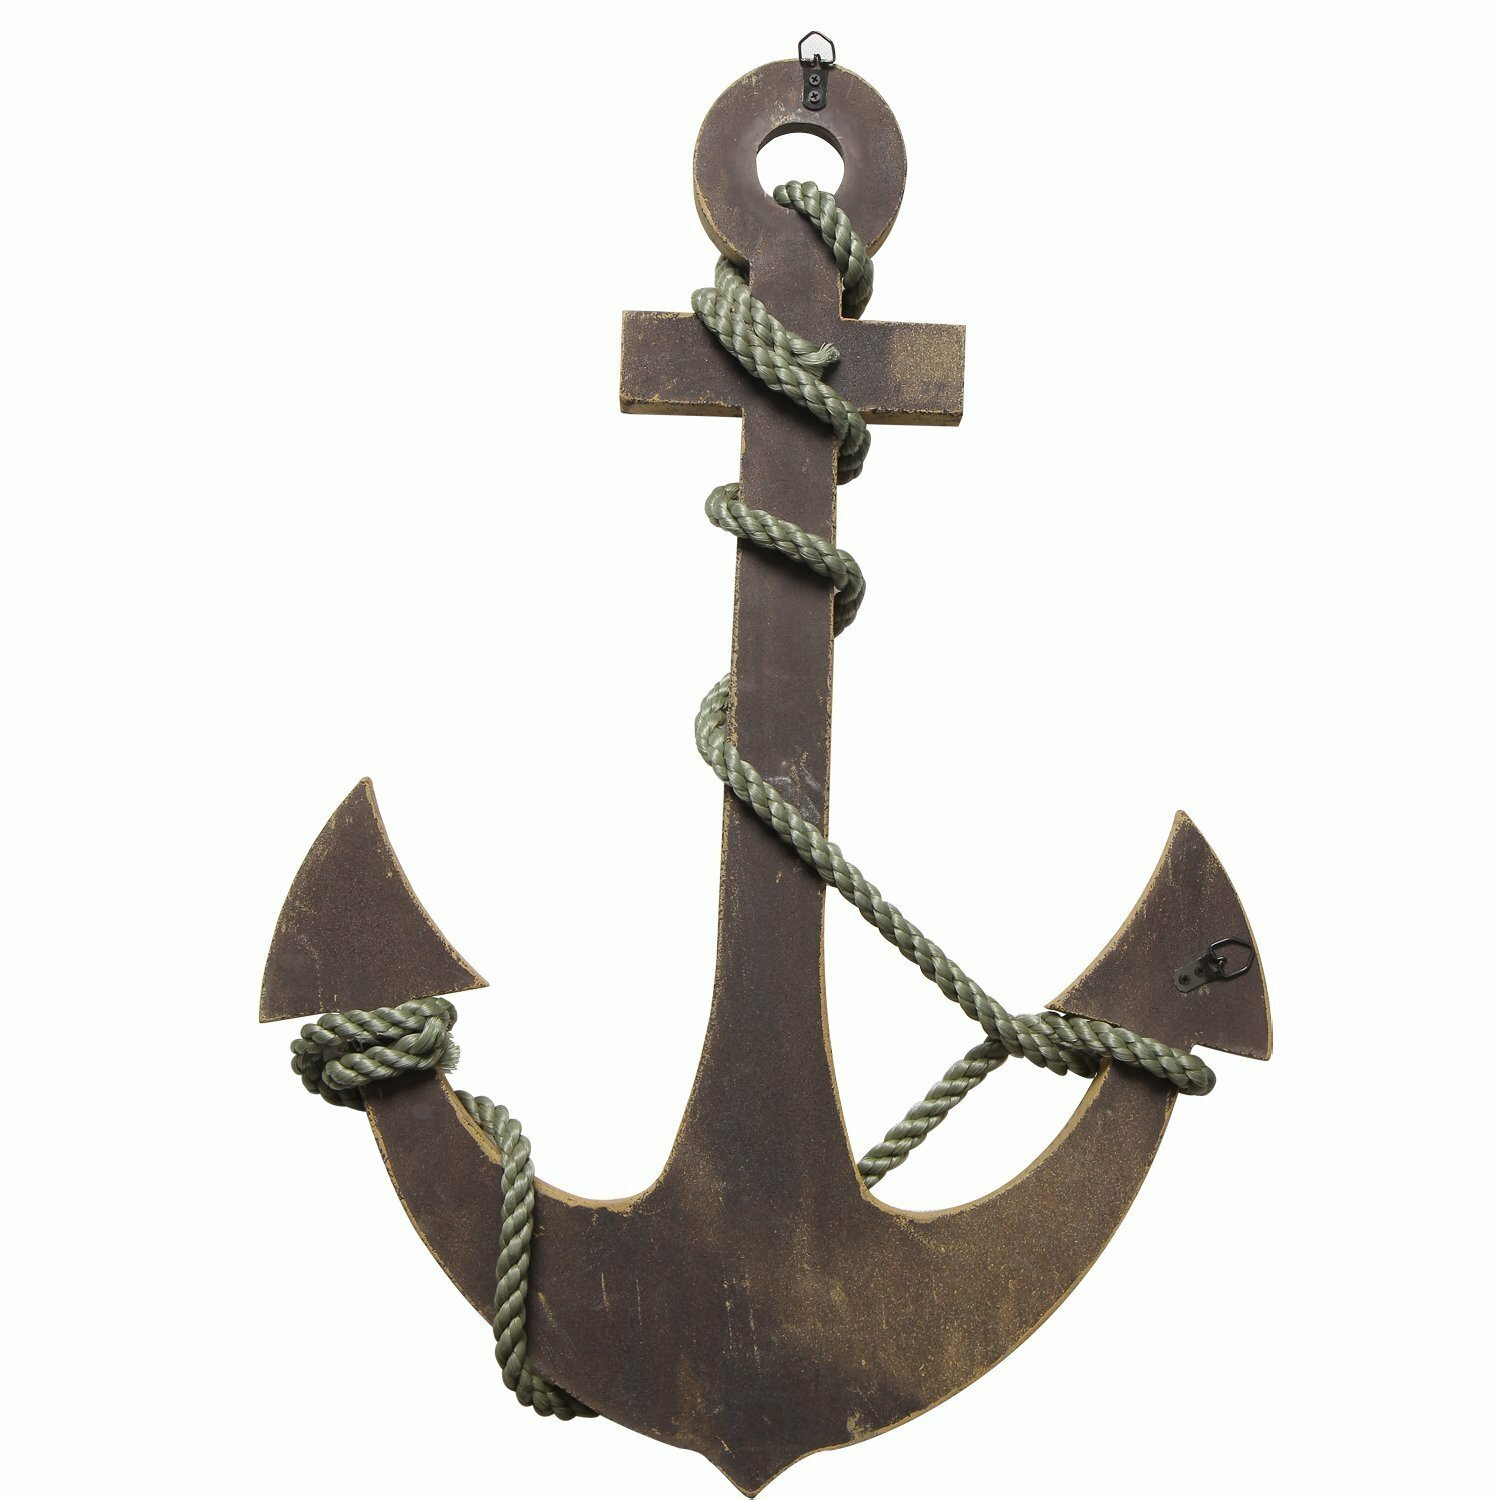 Adecotrading maritime nautical anchor wall decor reviews for Anchor decor